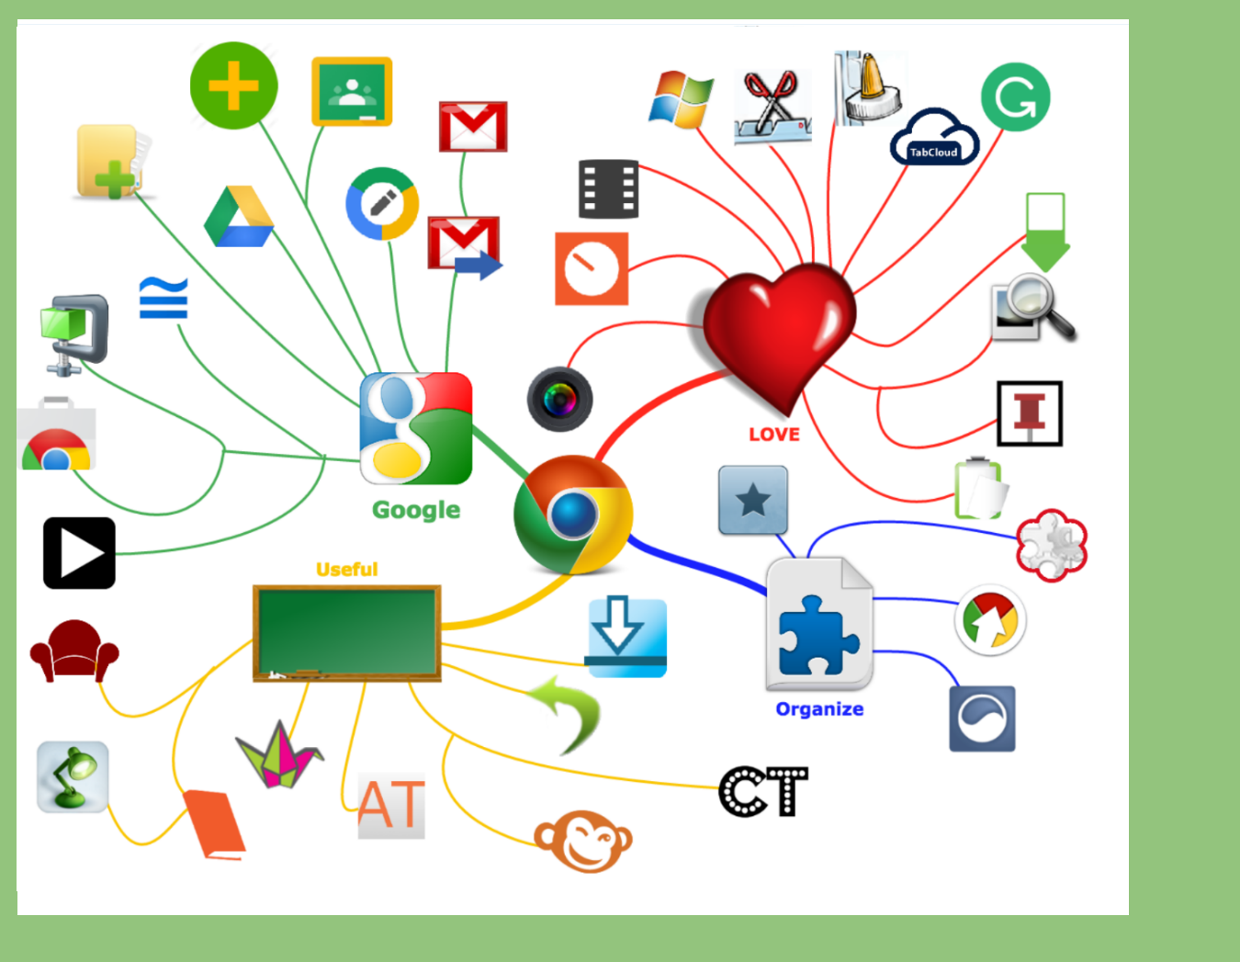 A Menagerie of Chrome Extensions